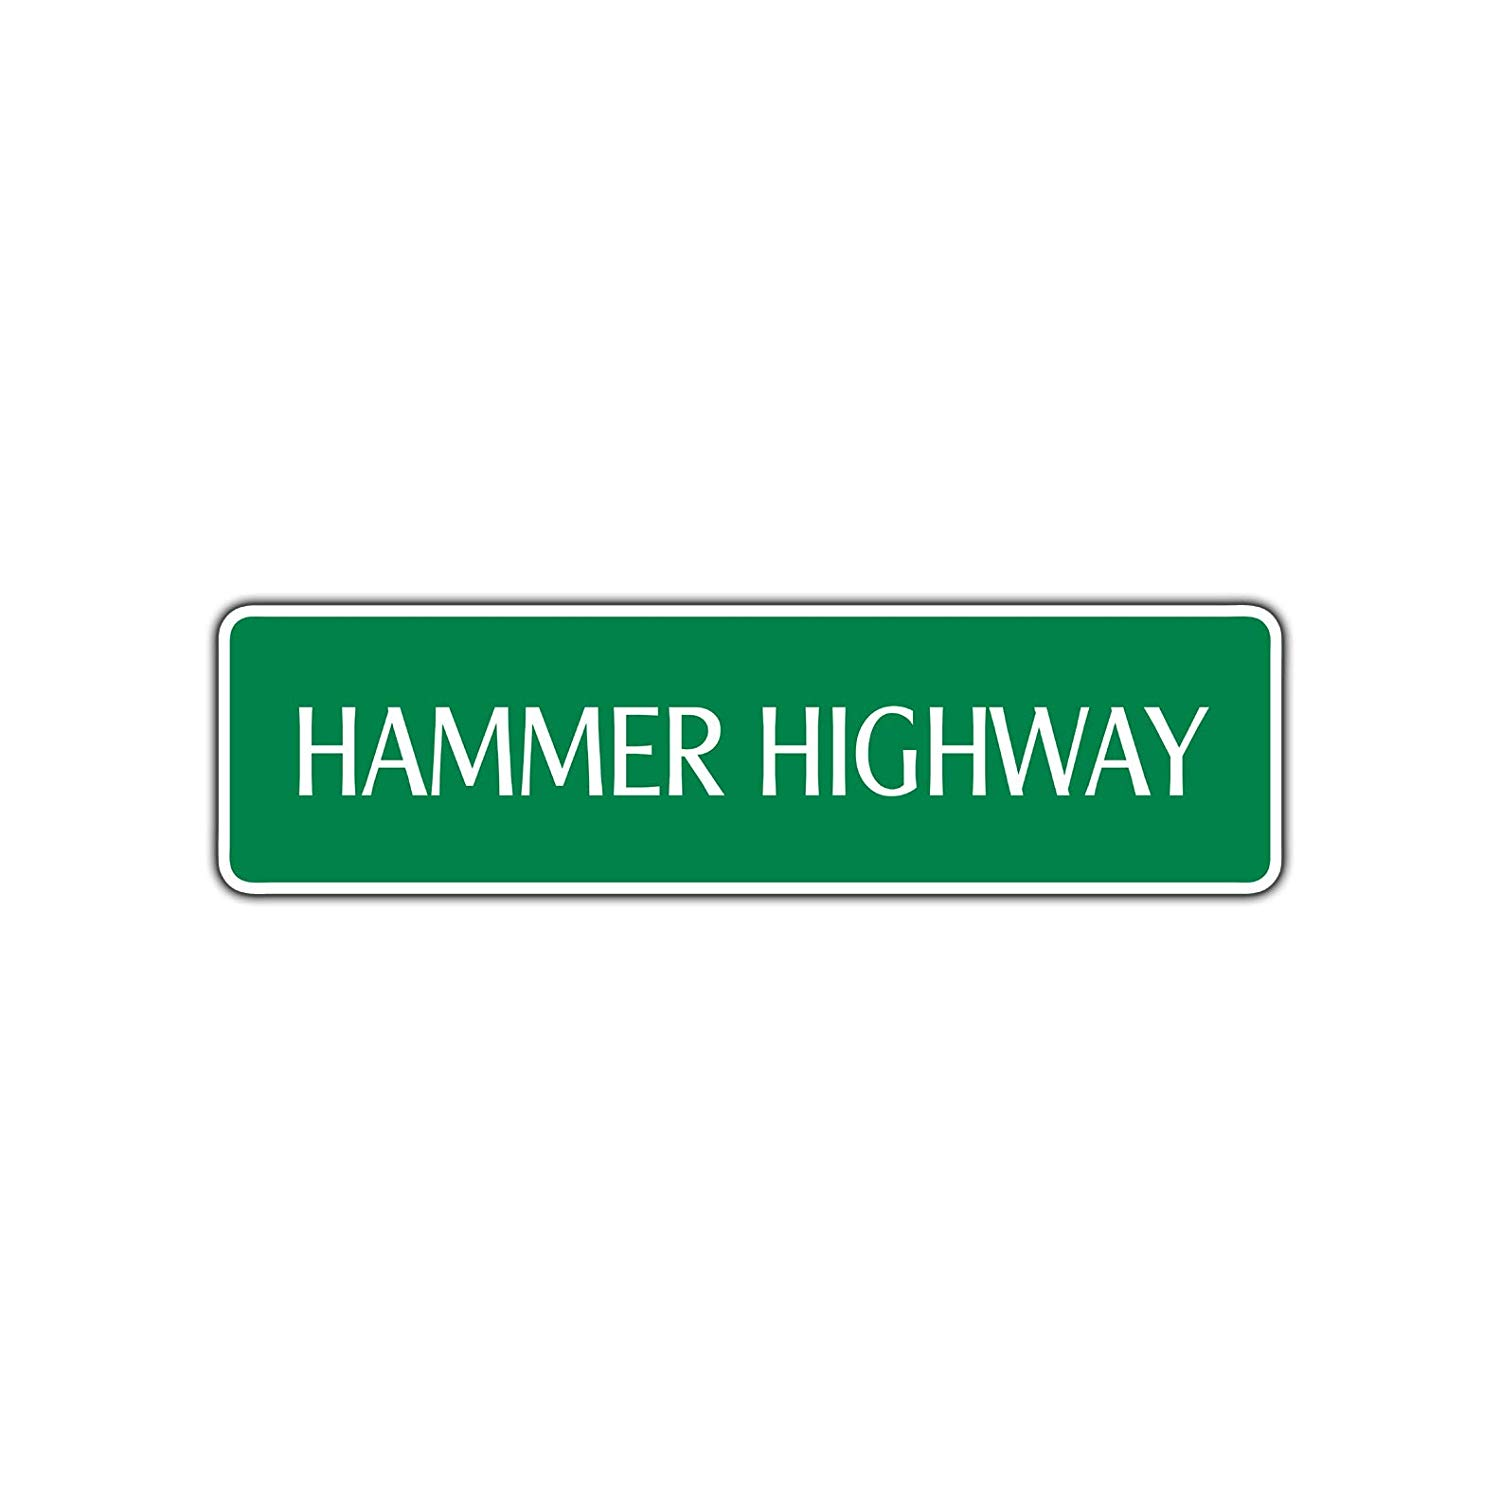 Hot Griddle Hwy 4 x 17 Aluminum Street Sign